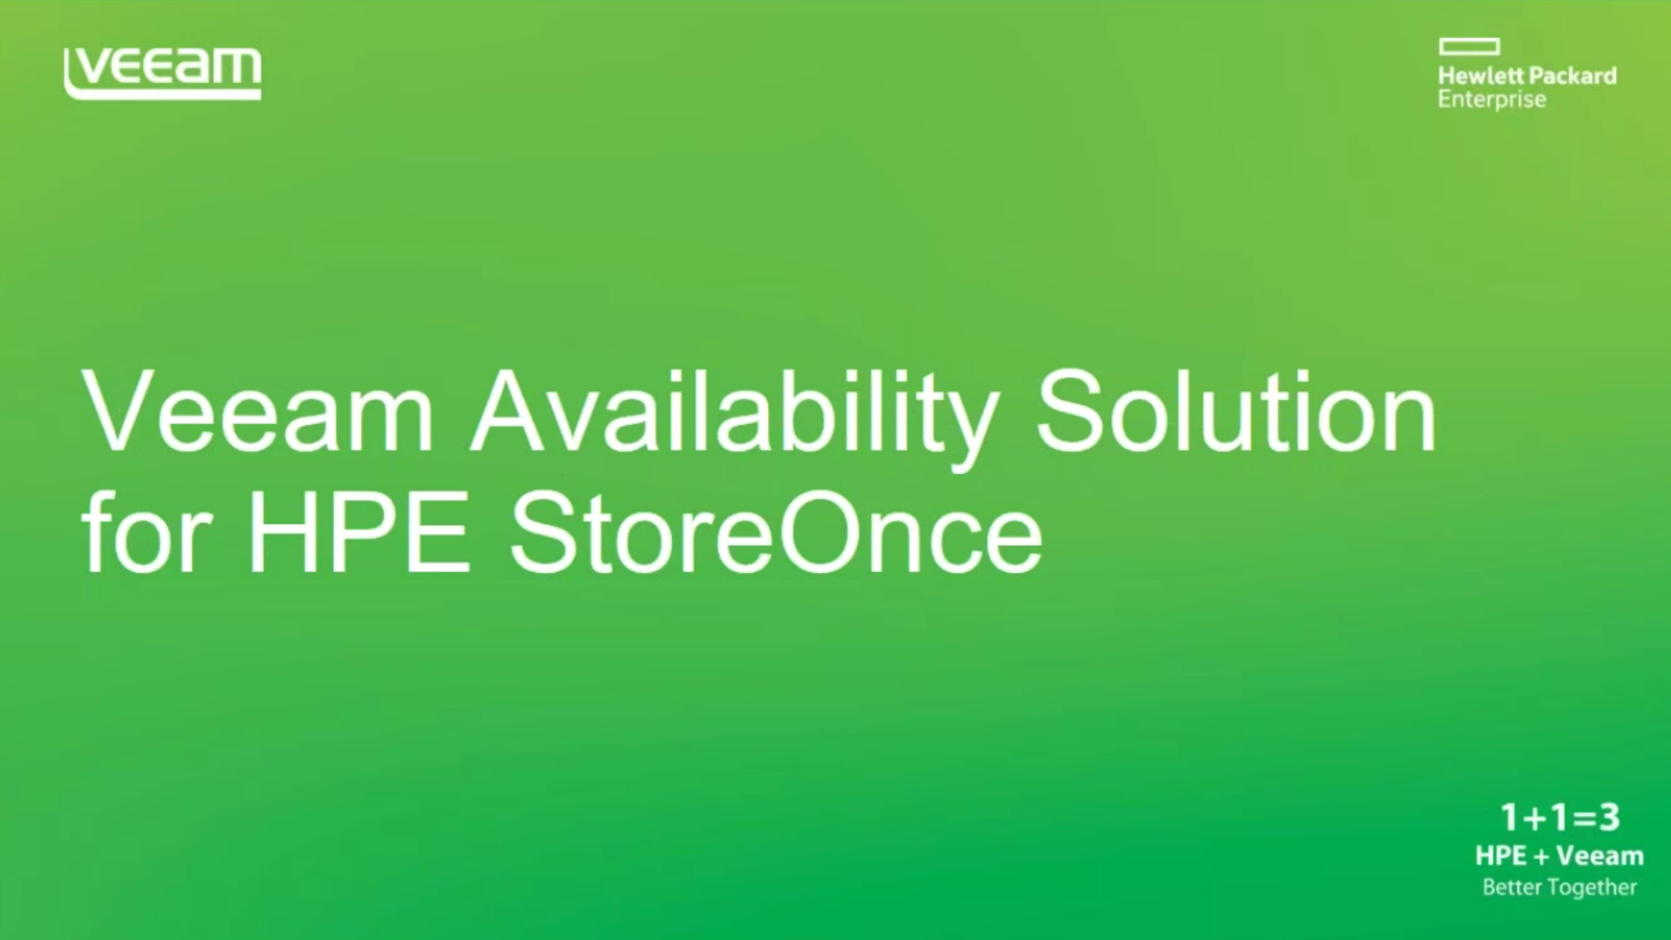 Veeam Availability Solution for HPE StoreOnce